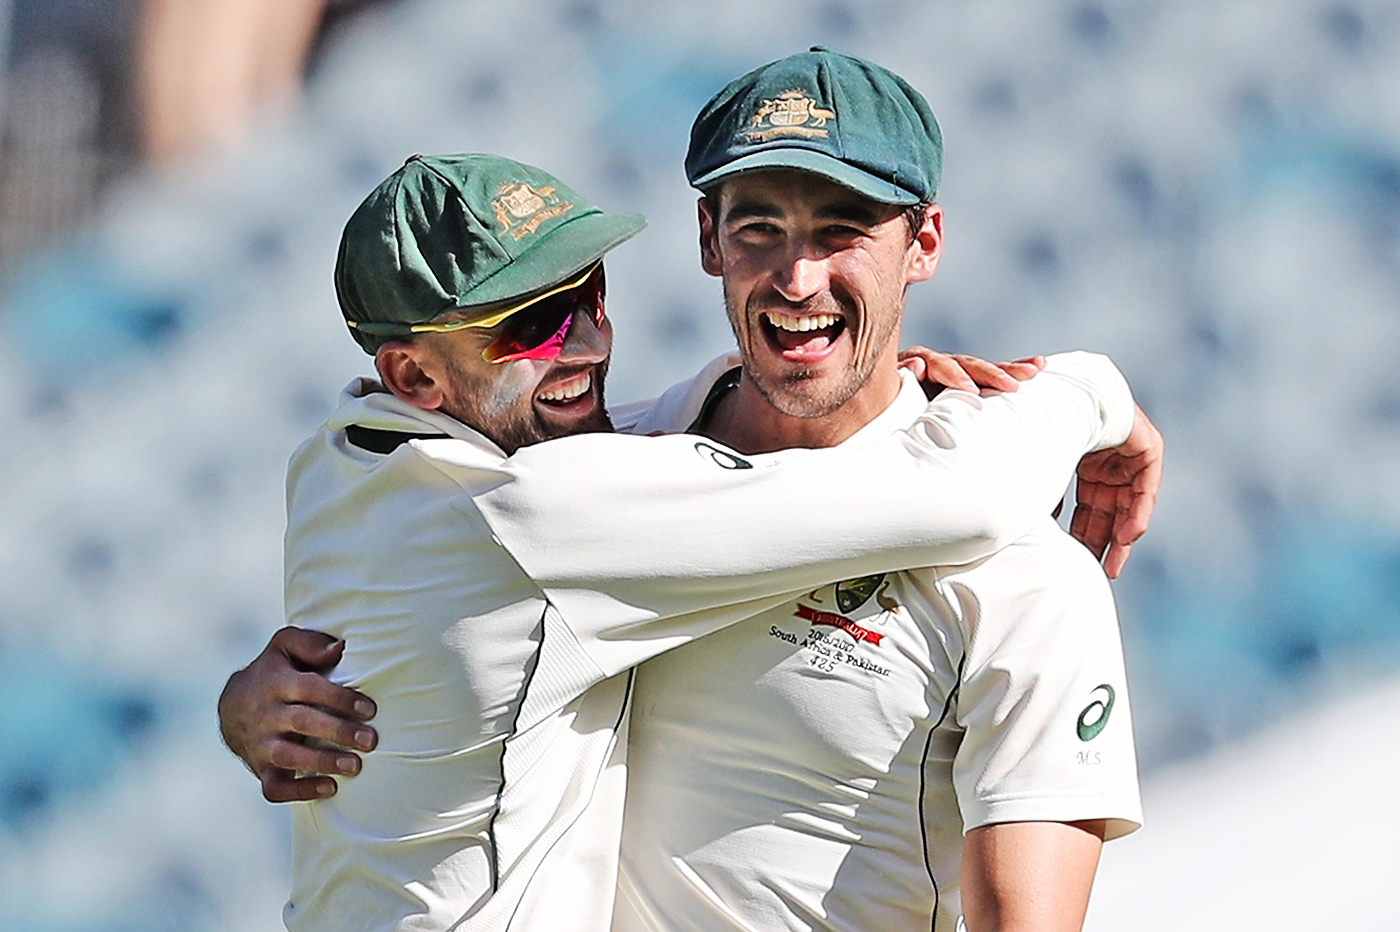 Won't take it Lyon down: Starc hasn't been afraid to speak his mind and disagree with popular opinion when the situation has called for it